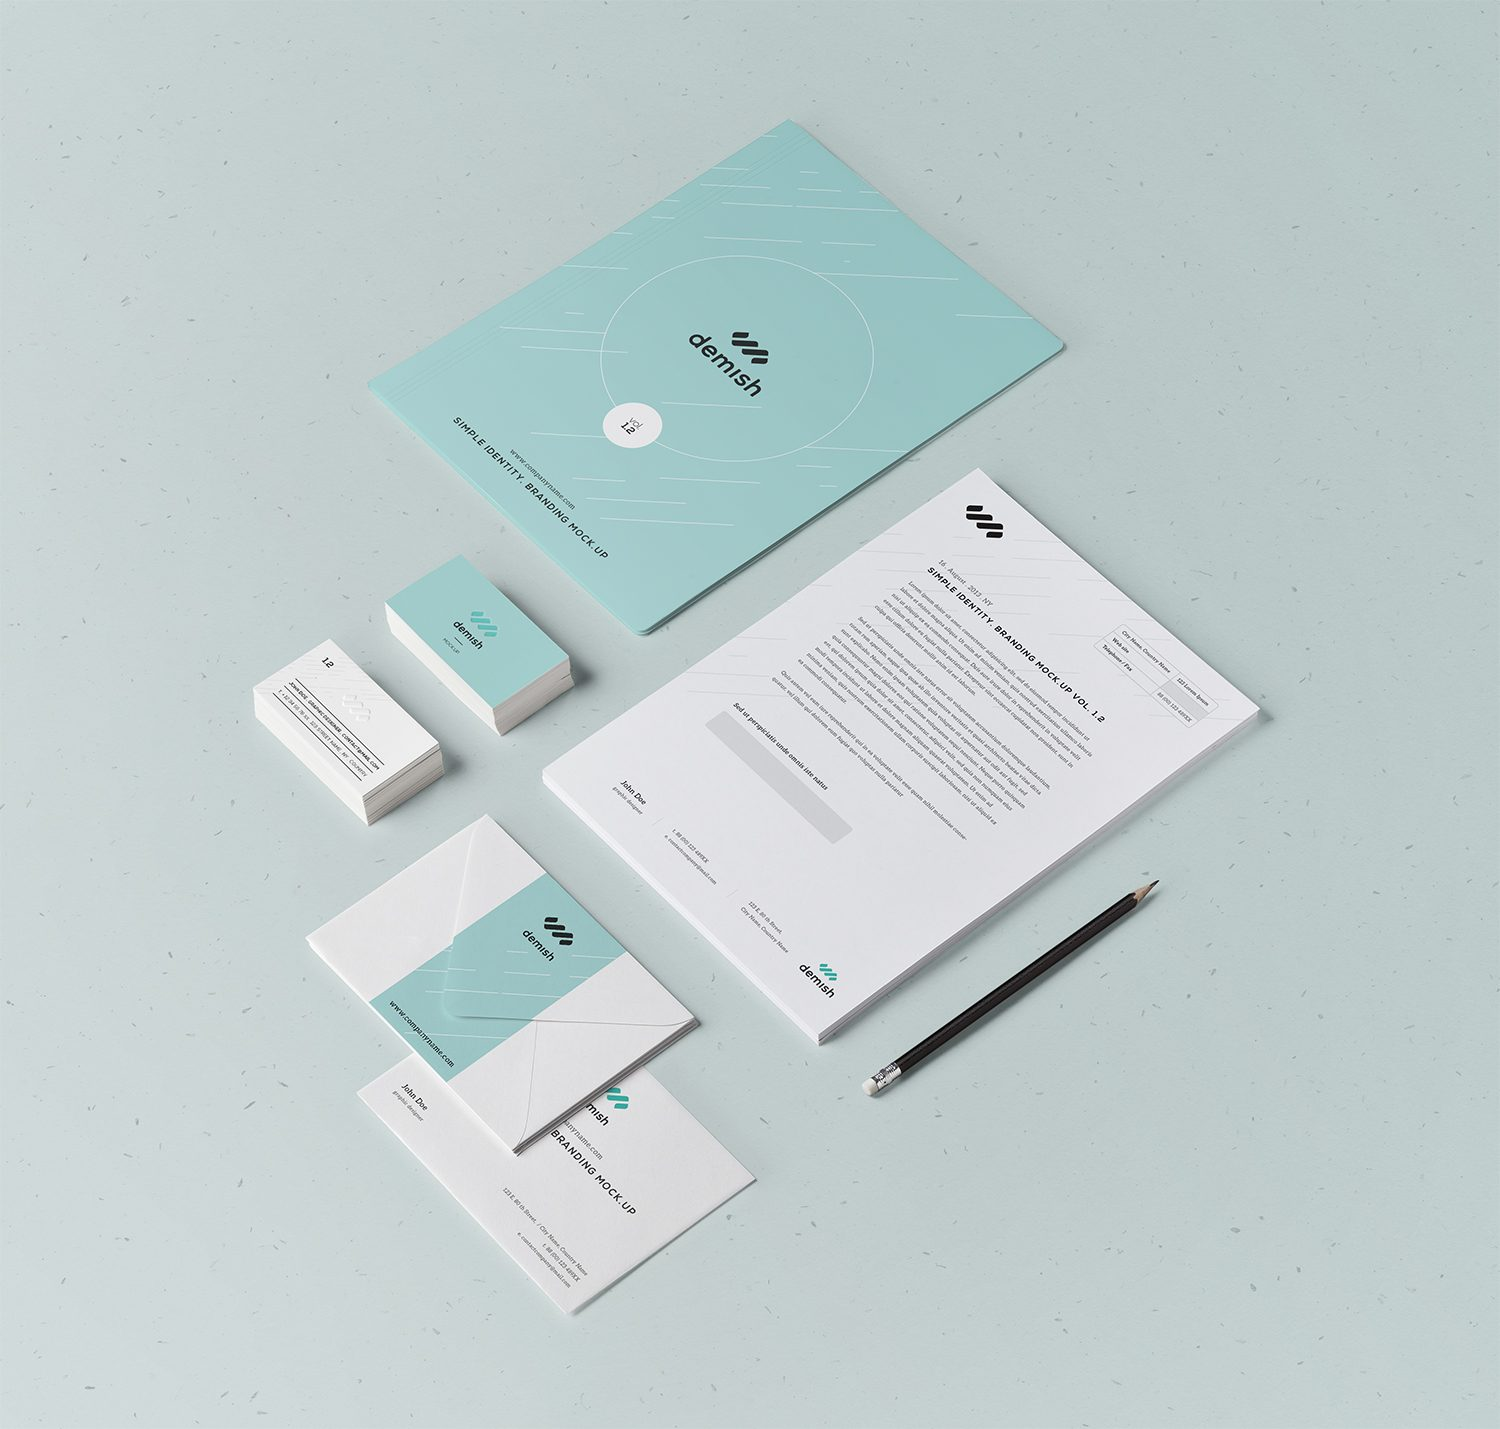 Free Stationery Branding Mock-Up